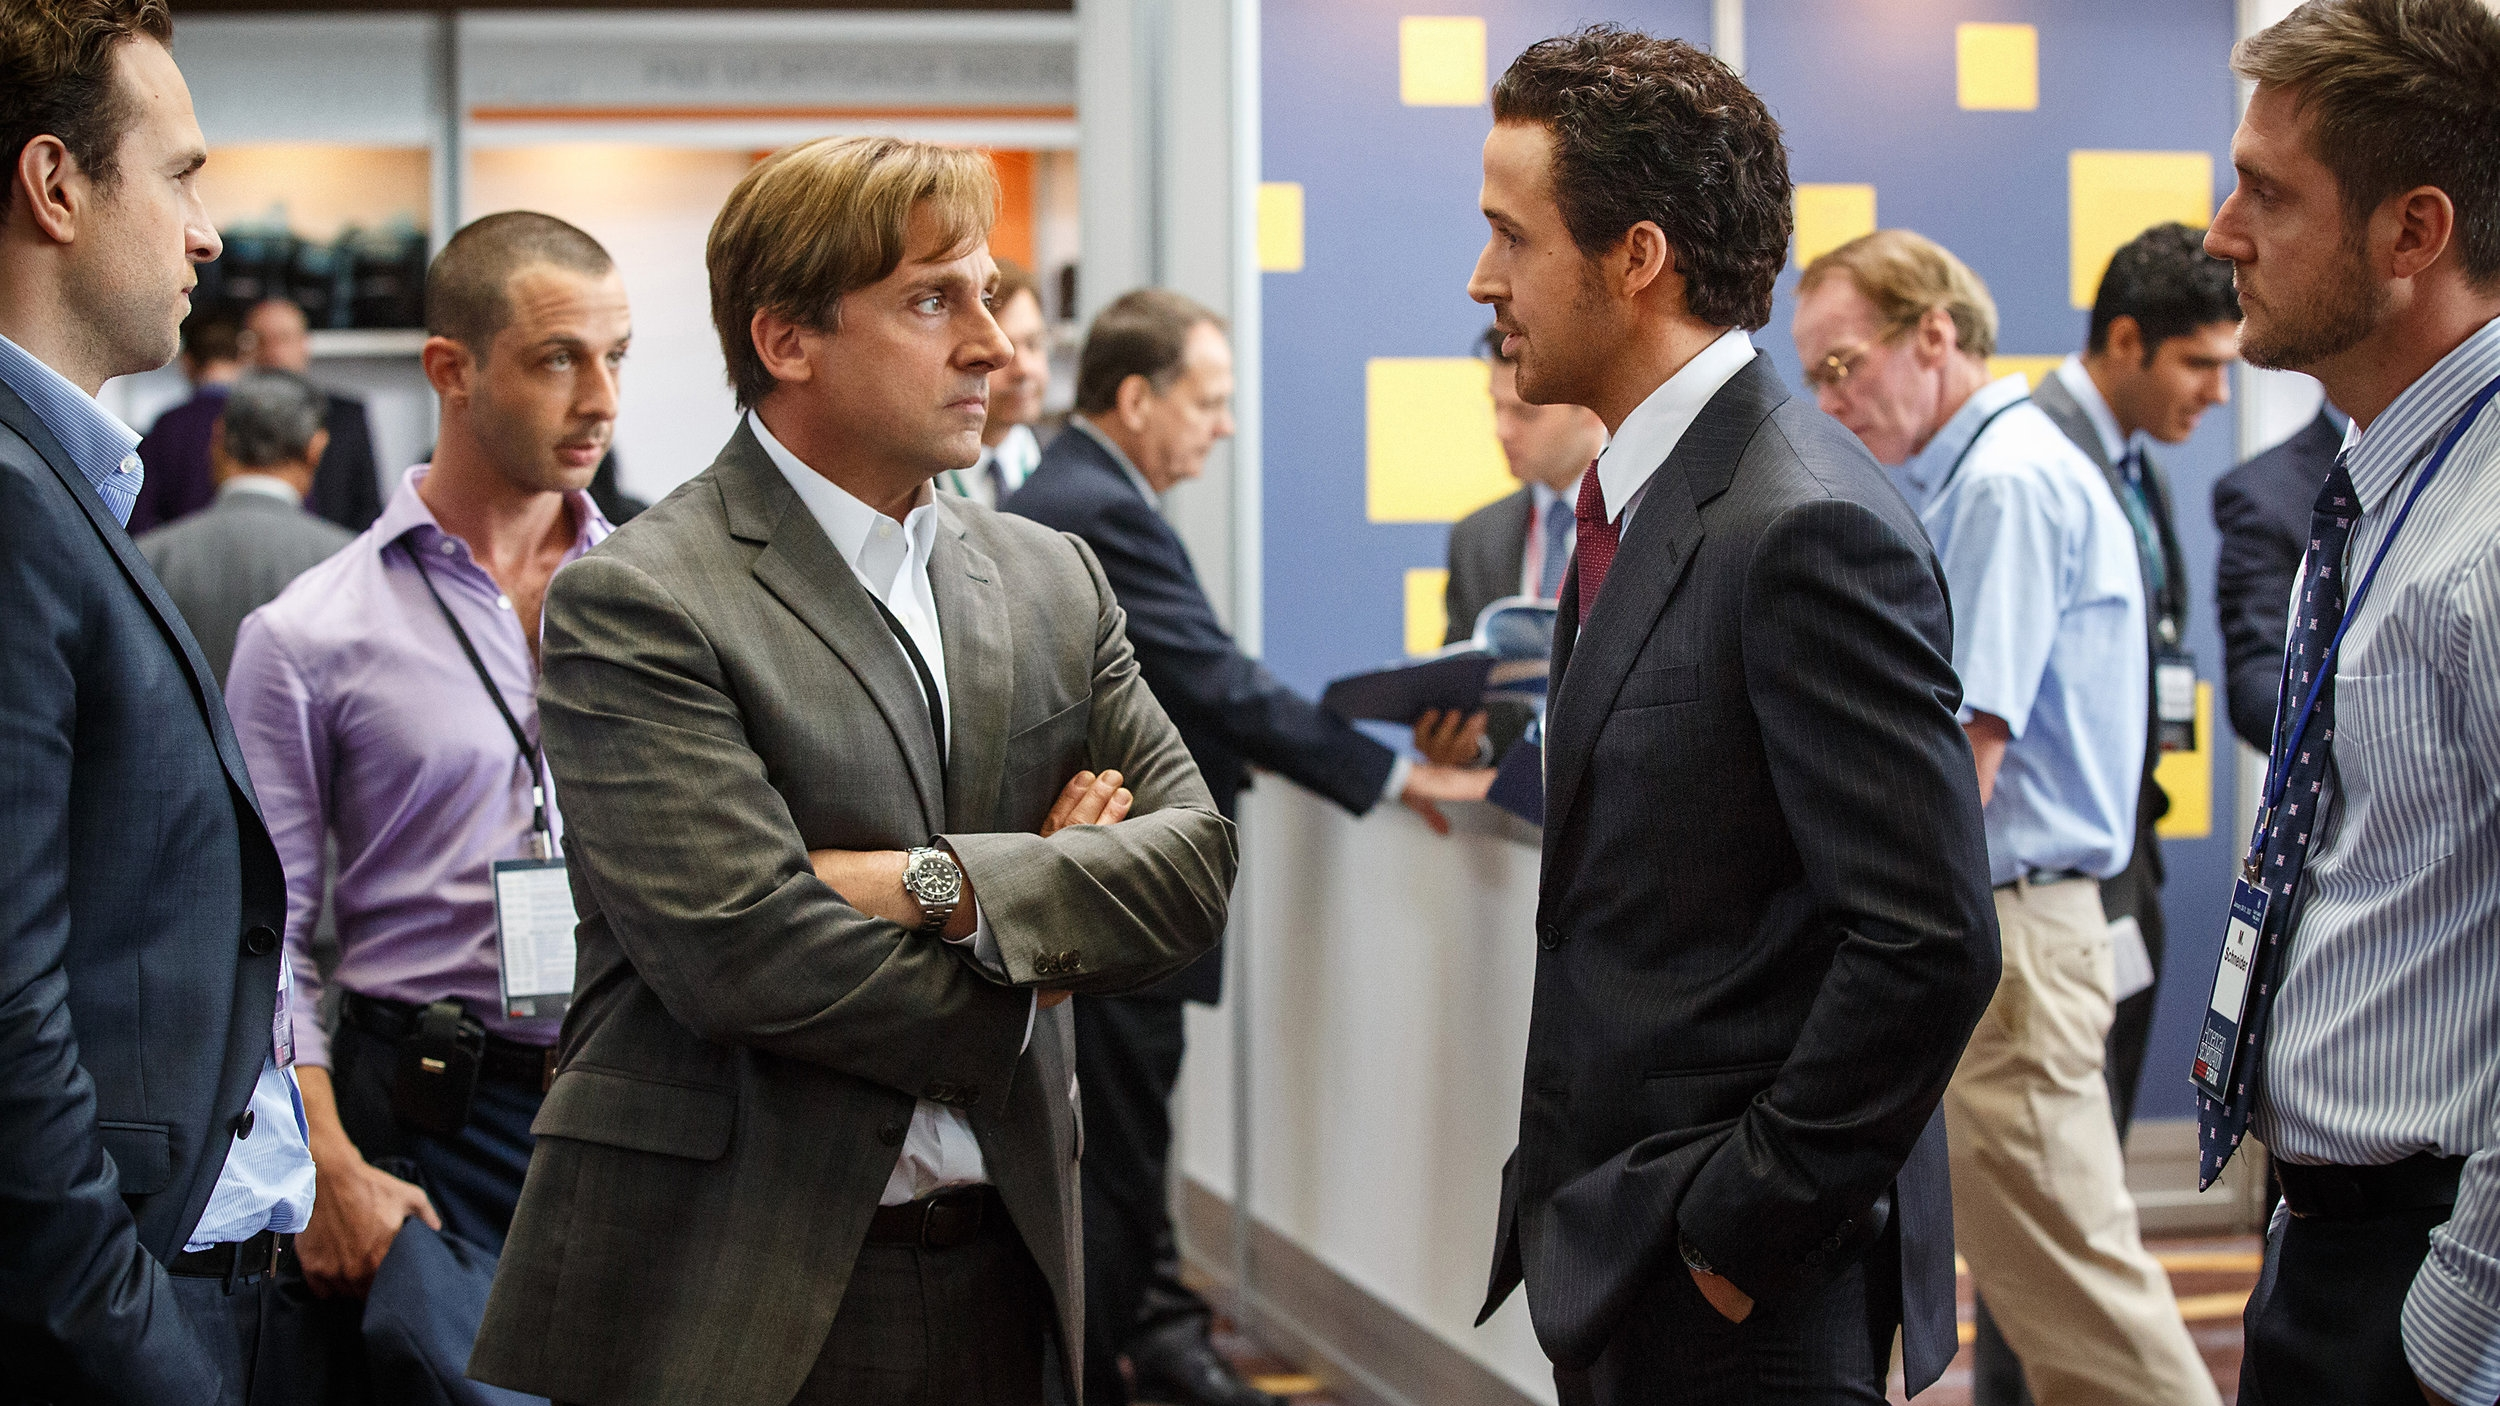 the-big-short-steve-carell-ryan-gosling.jpg